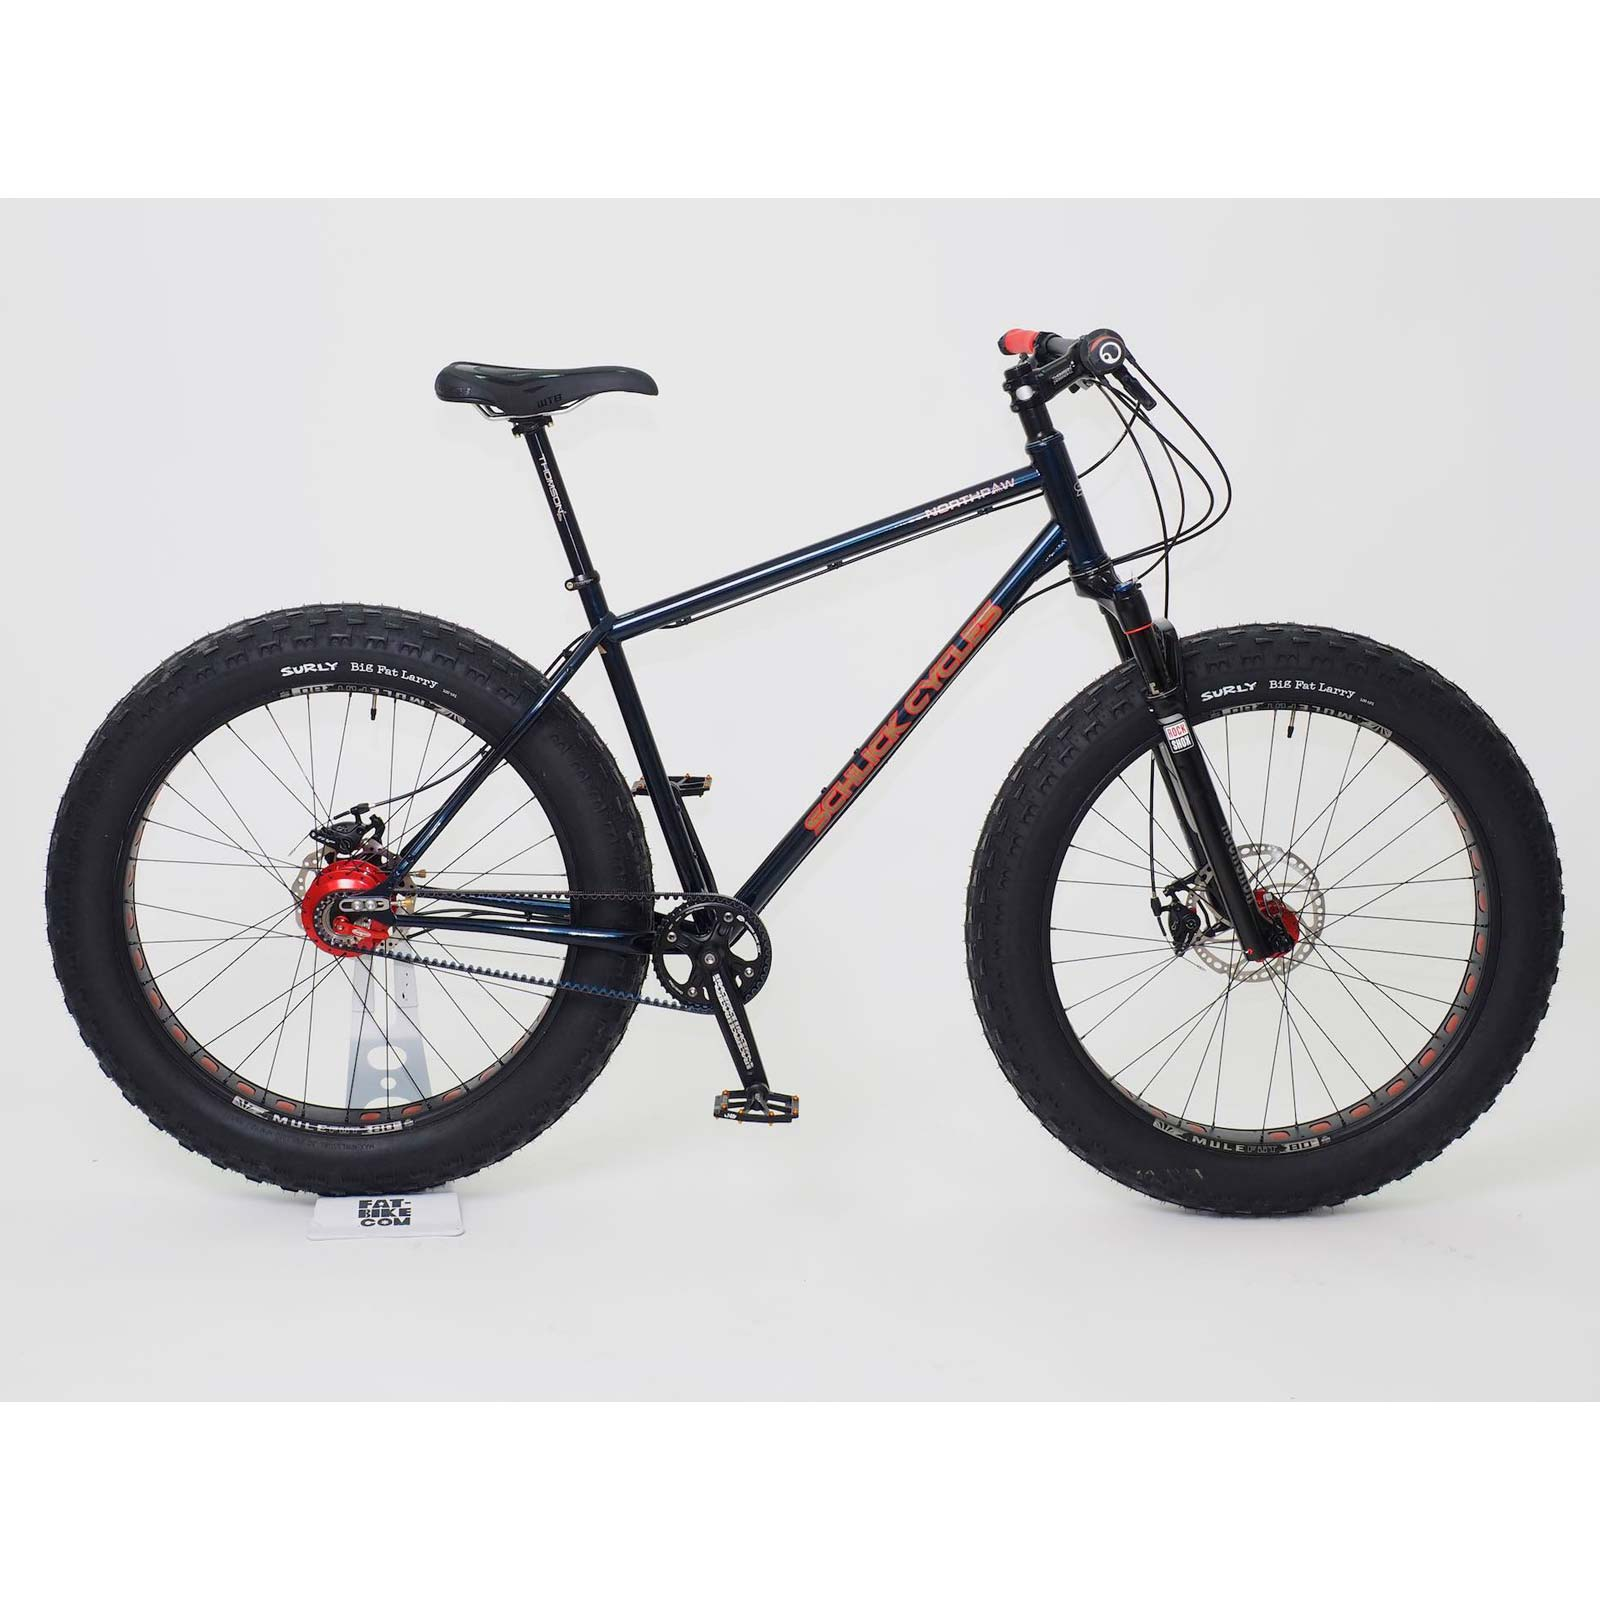 Schlick Northpaw Belt Drive Rohloff Fat-bike - Large